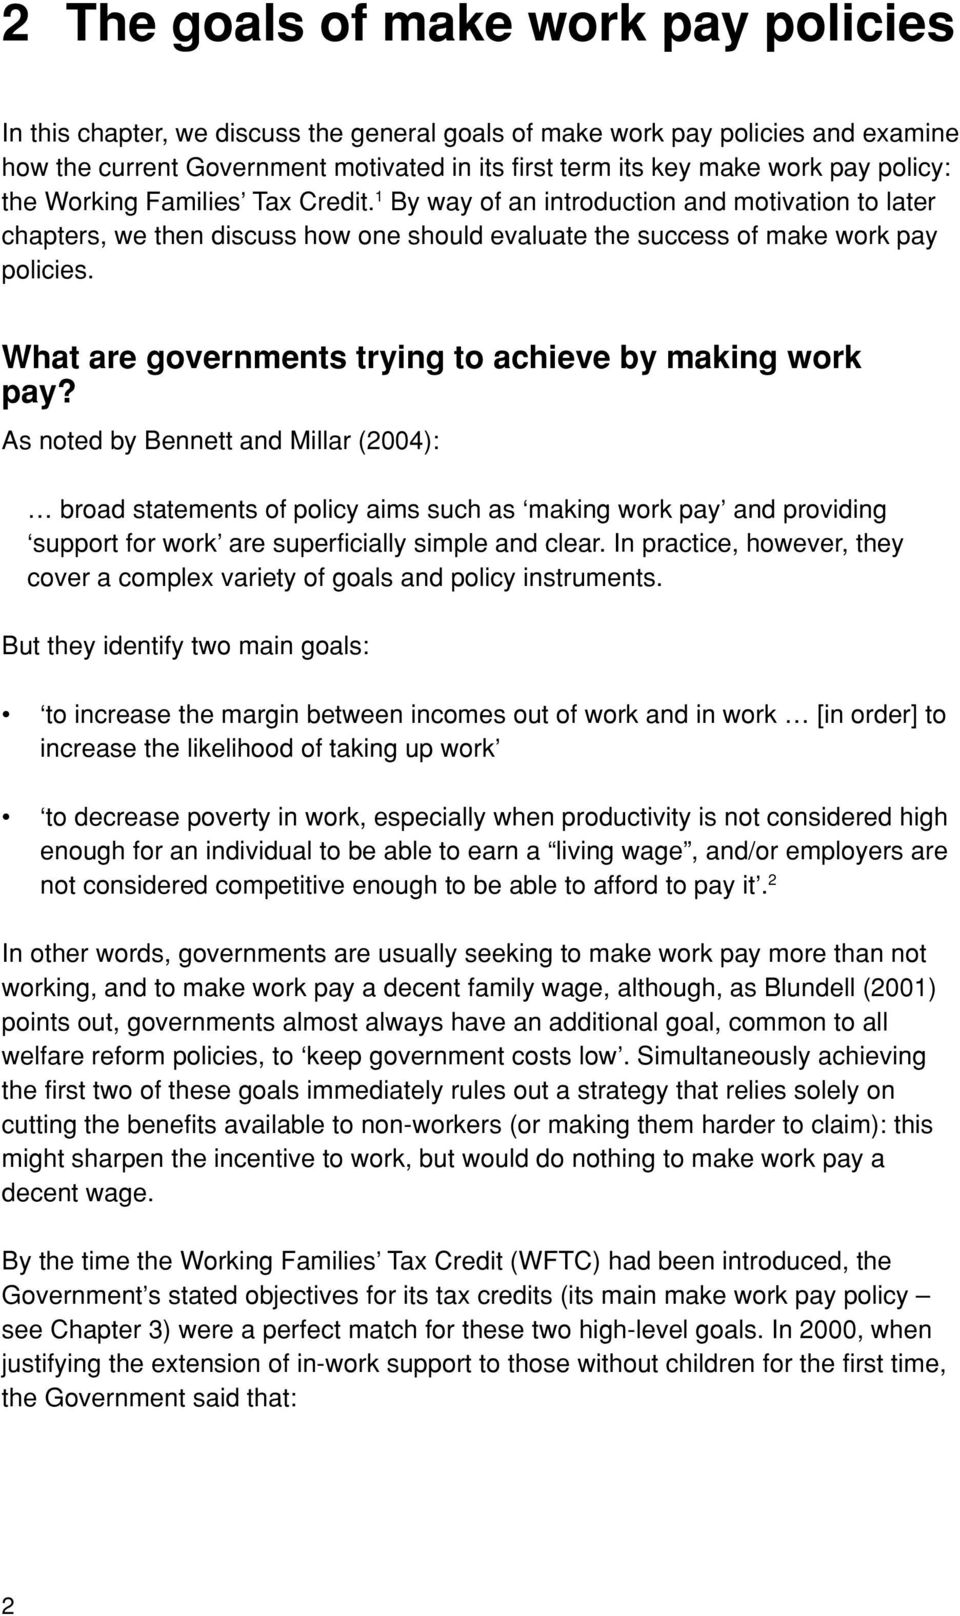 What are governments trying to achieve by making work pay?